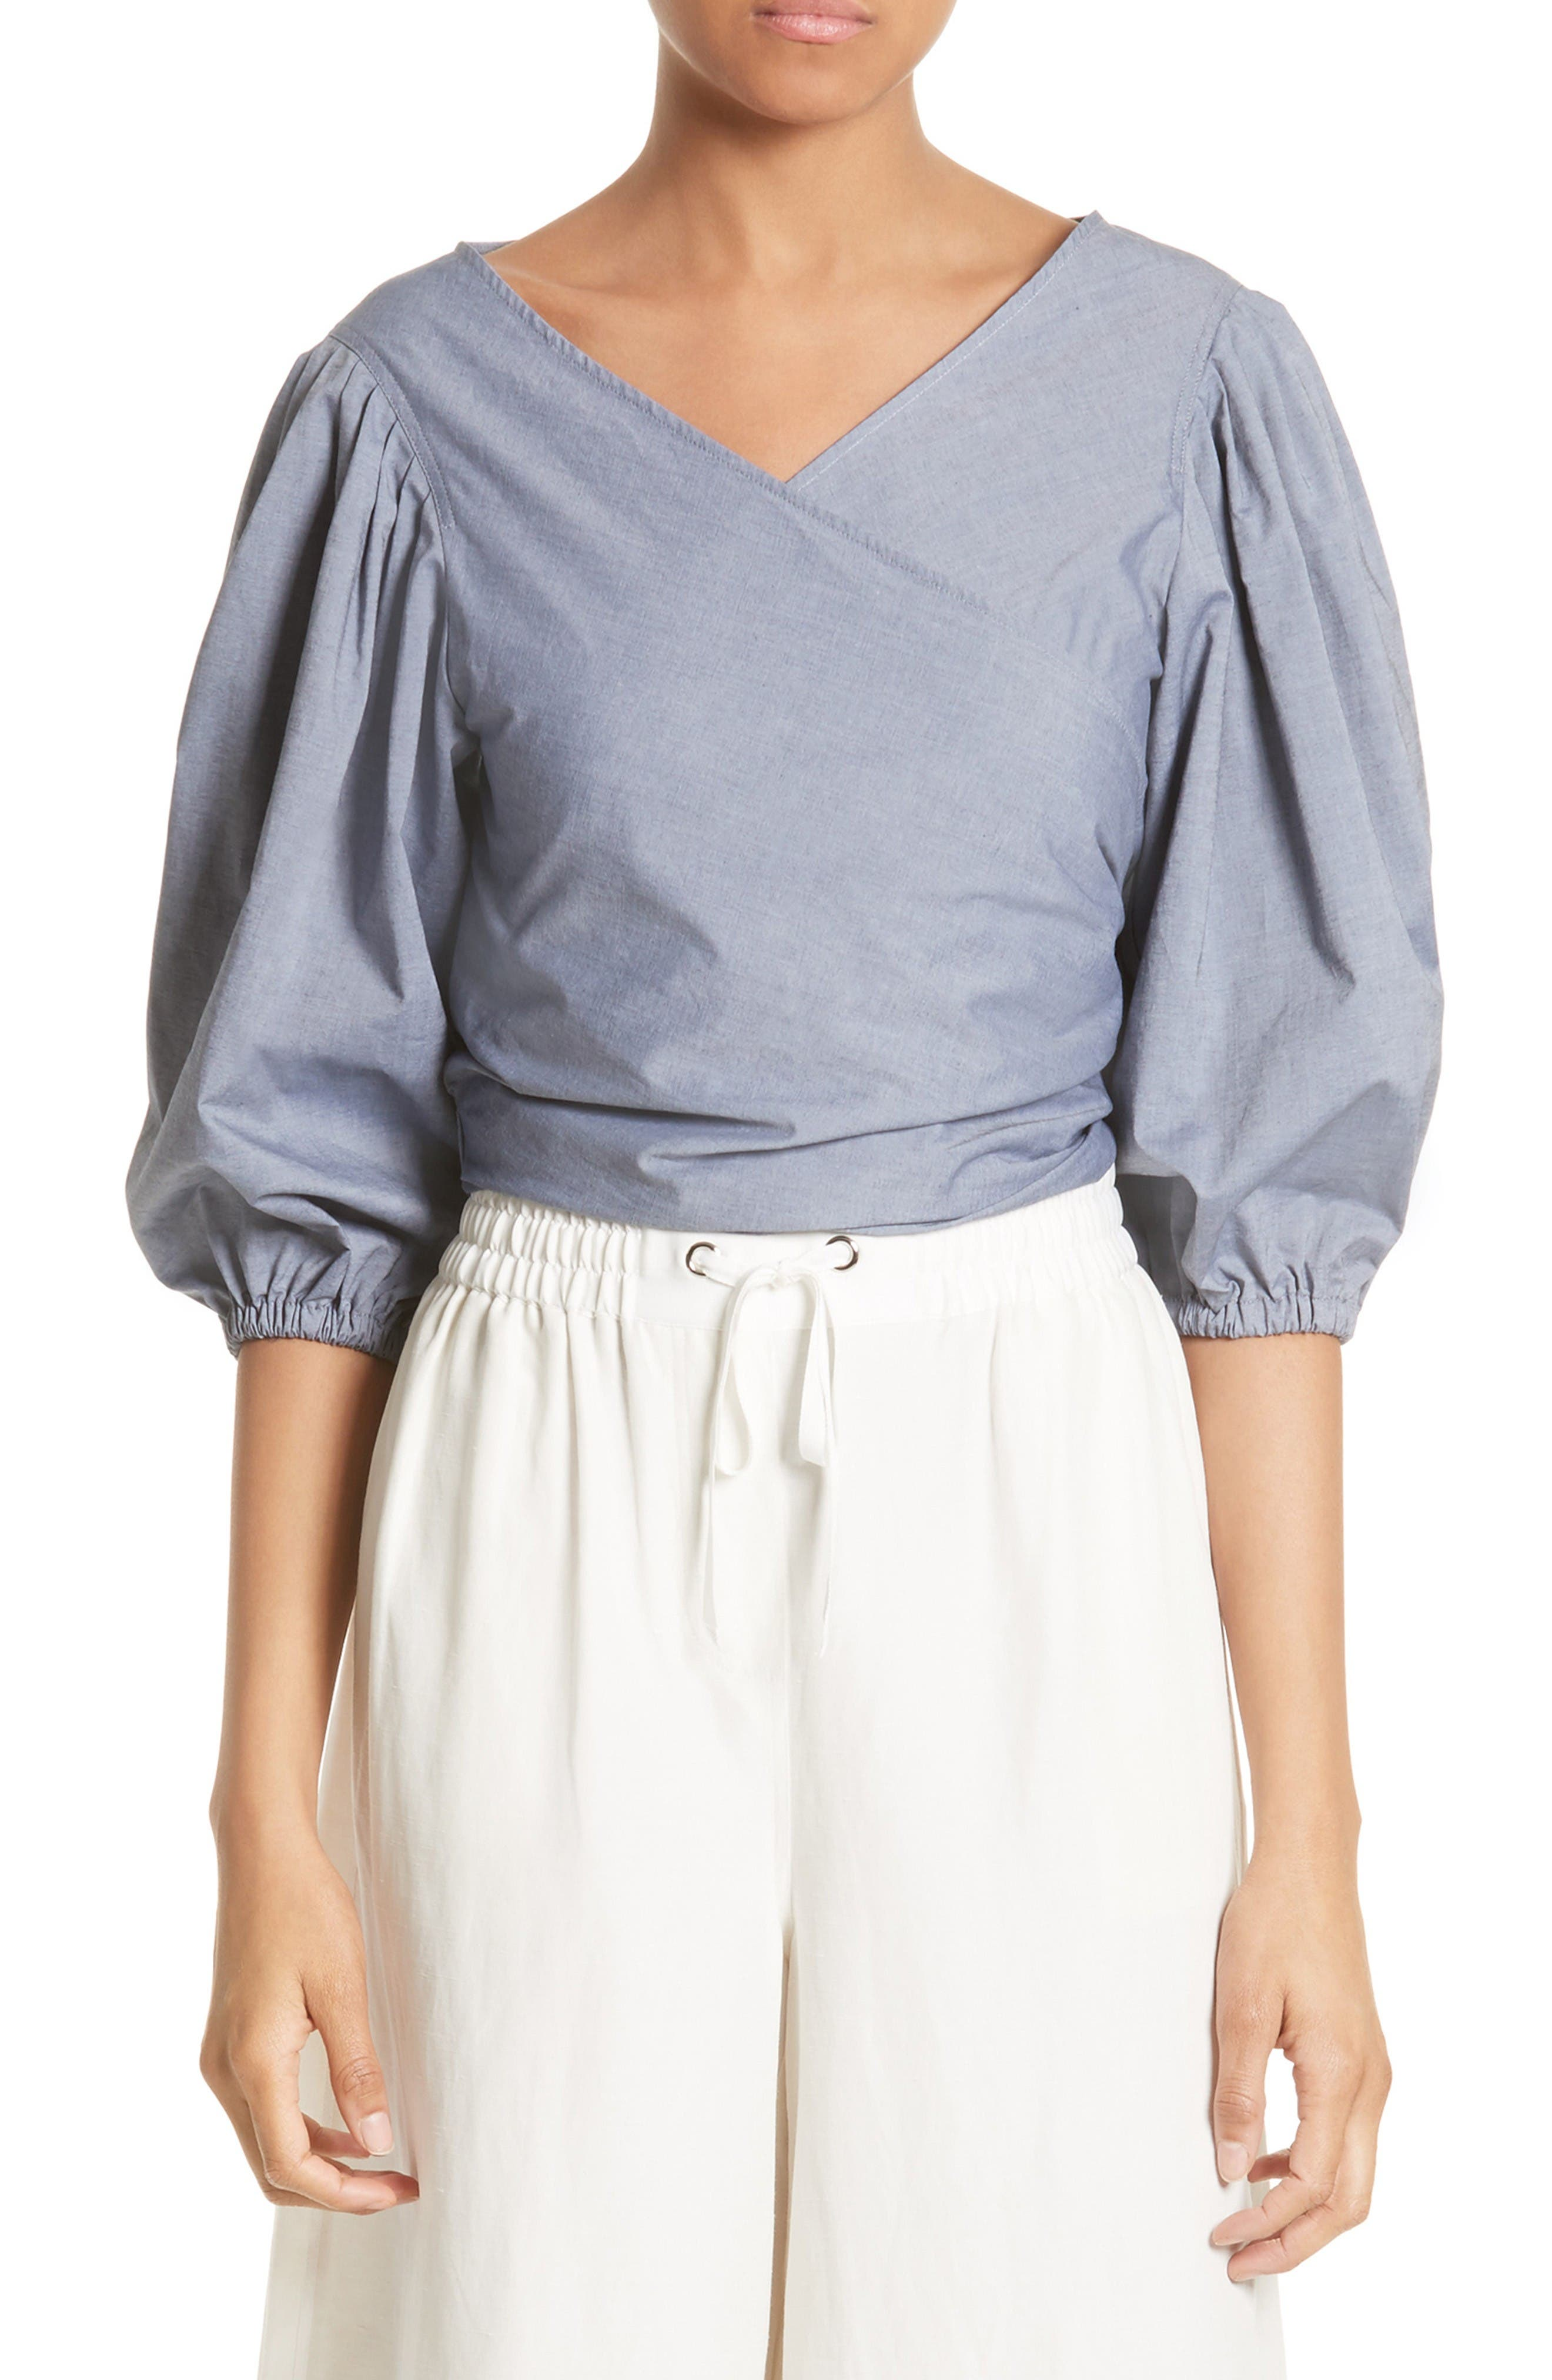 Elizabeth and James Farrah Blouson Wrap Top